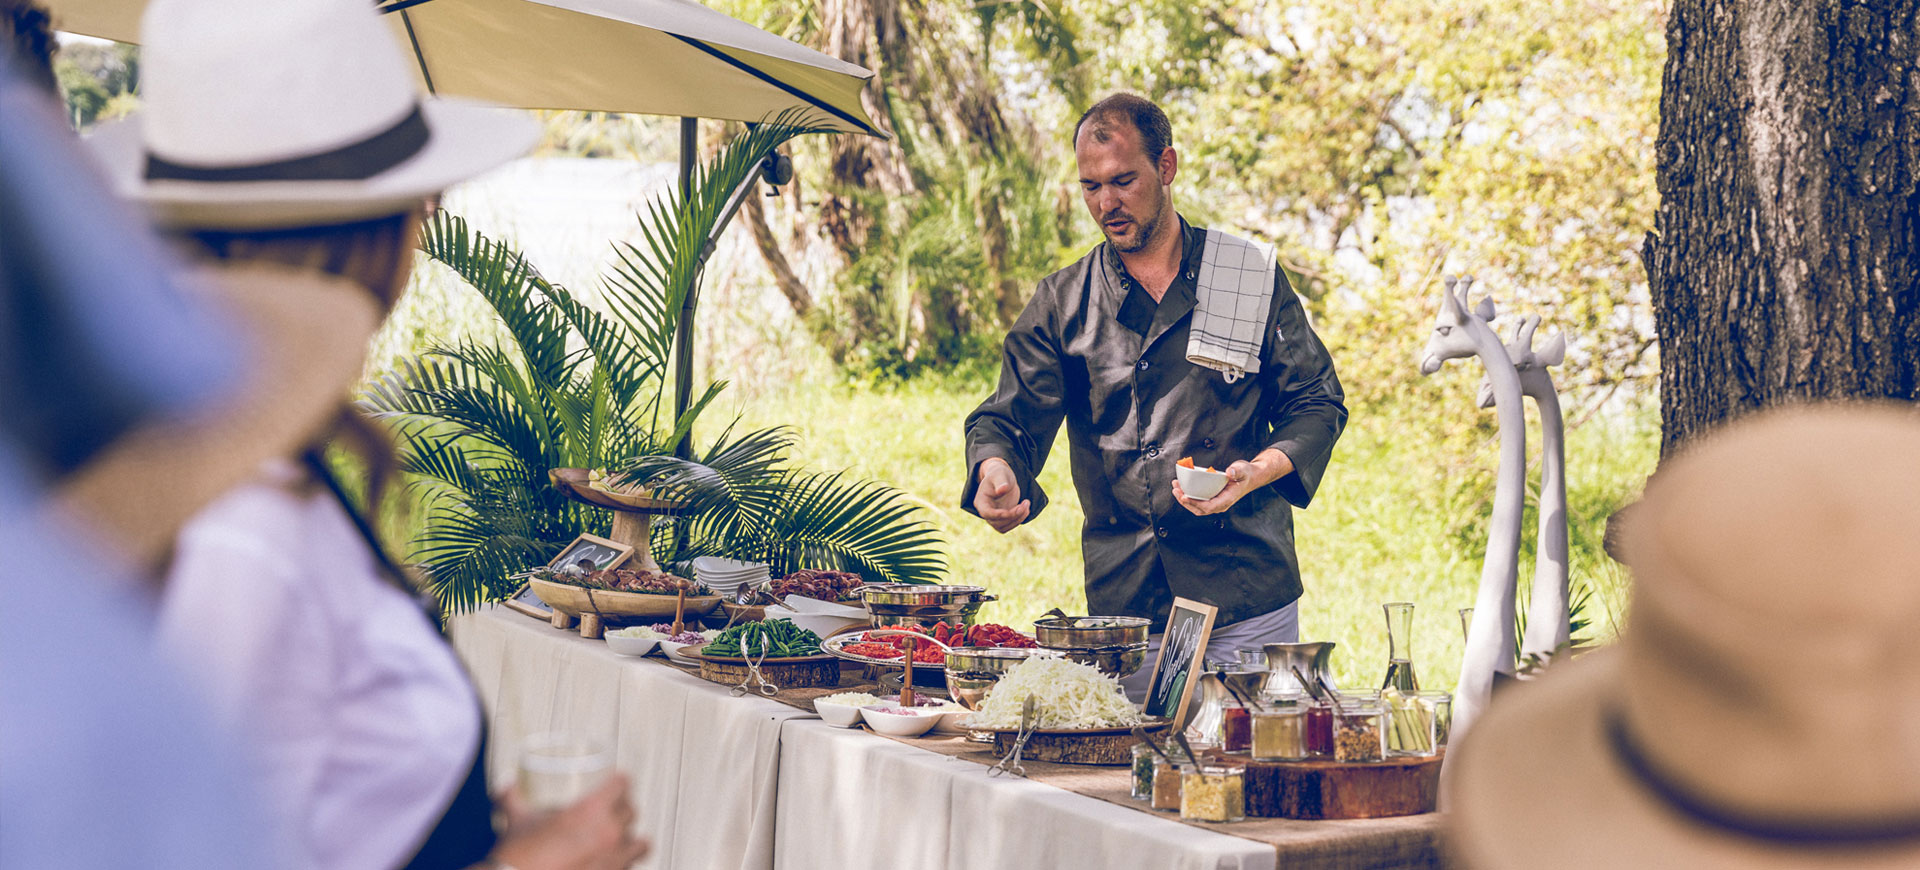 Victoria Falls Conference Catering Service